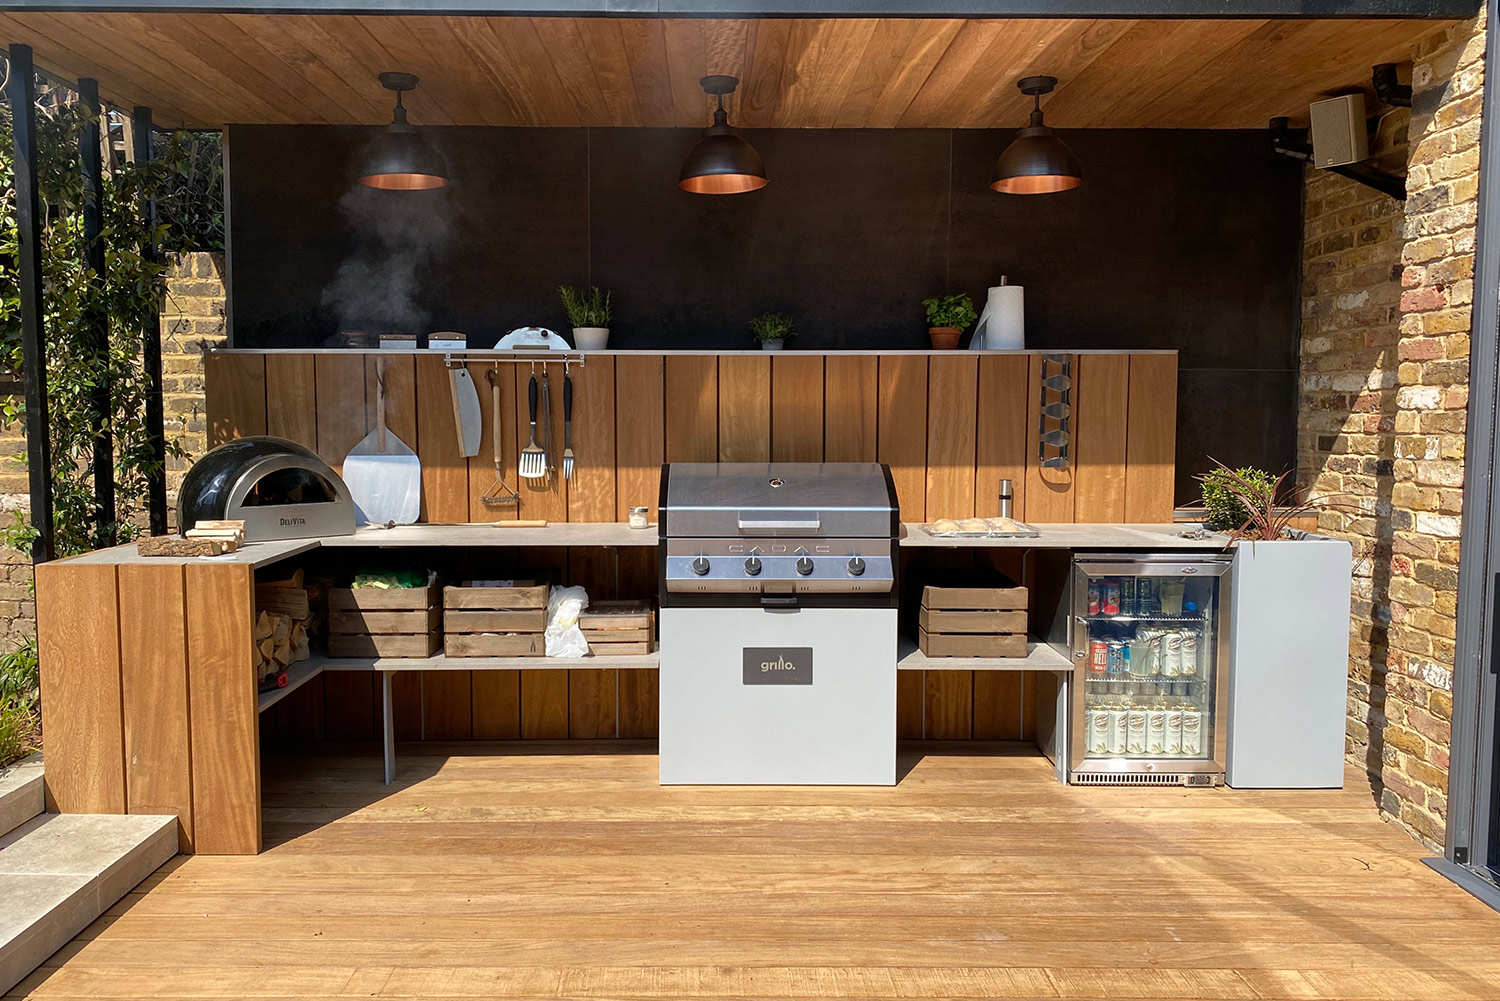 Chiswick Grillo kitchen with smoking Delivita pizza oven in use